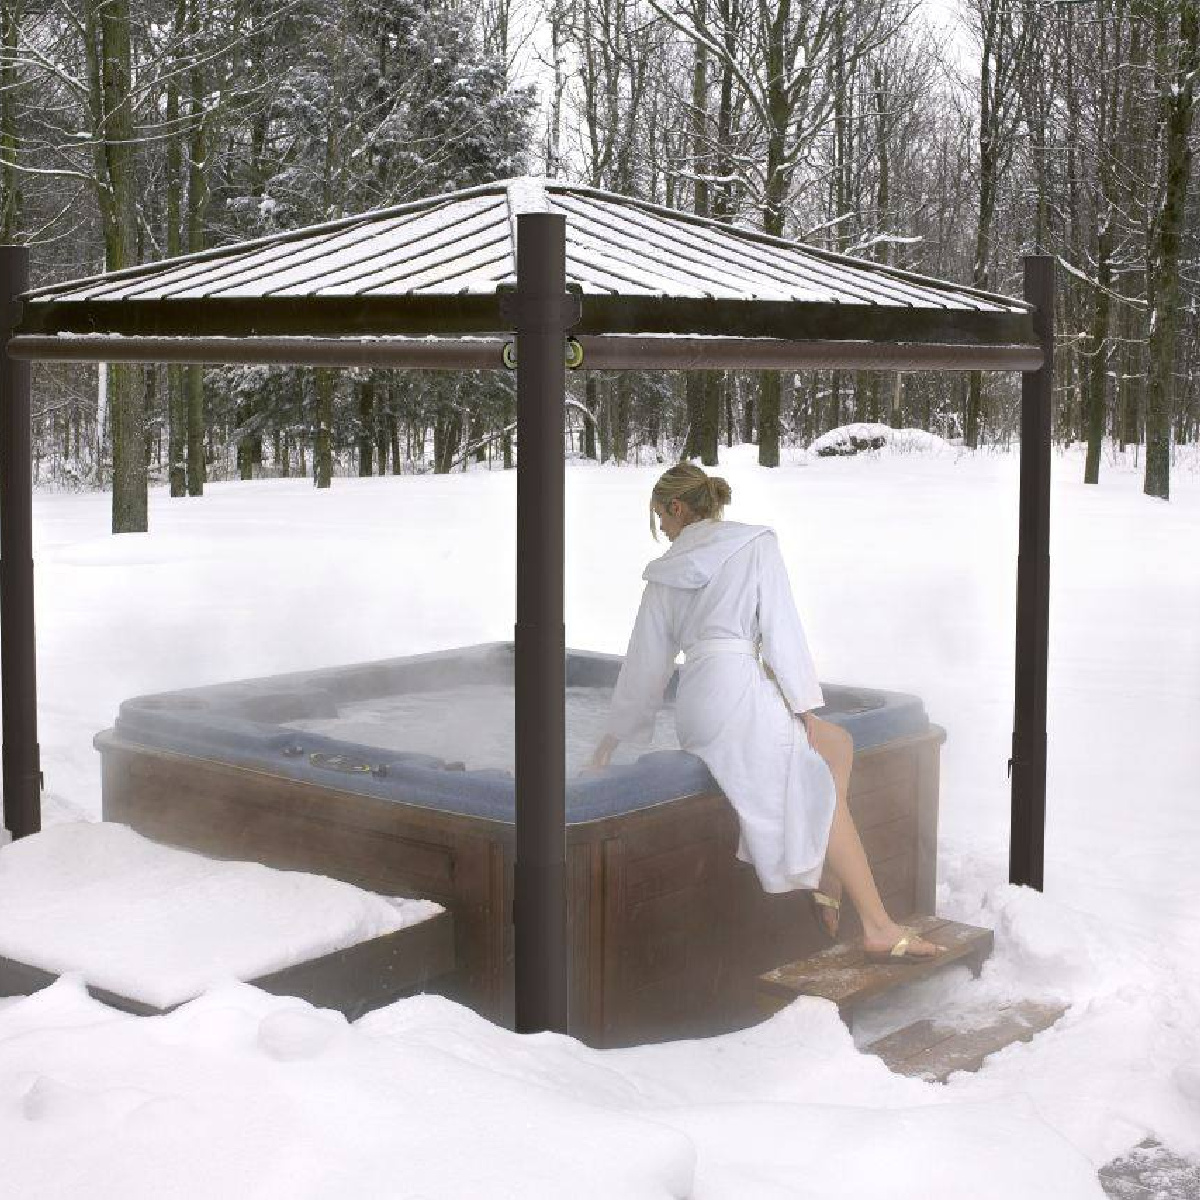 Prepping your hot tub for the cold season